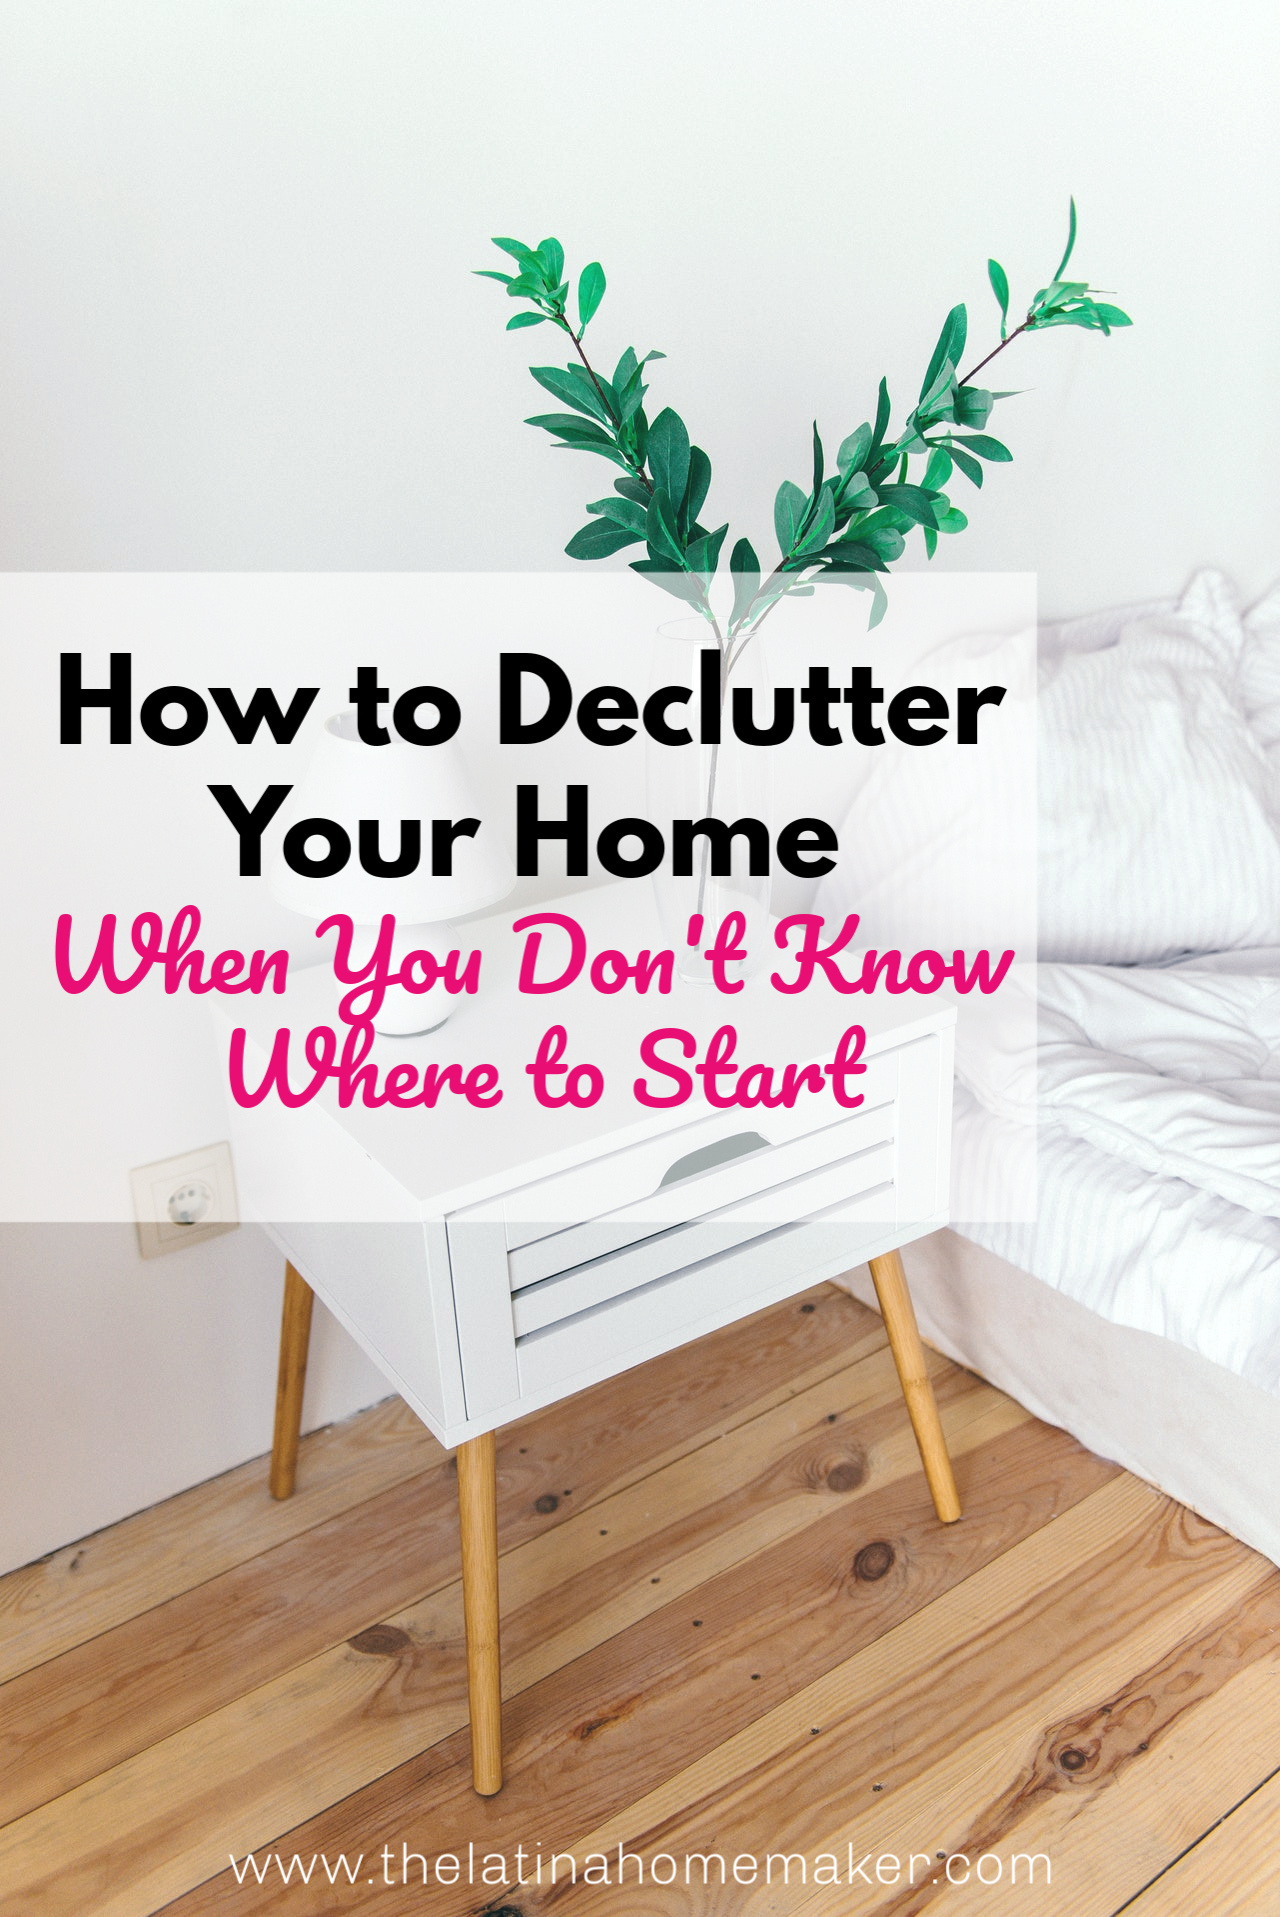 How to Declutter Your Home When You Don't Know Where to Start